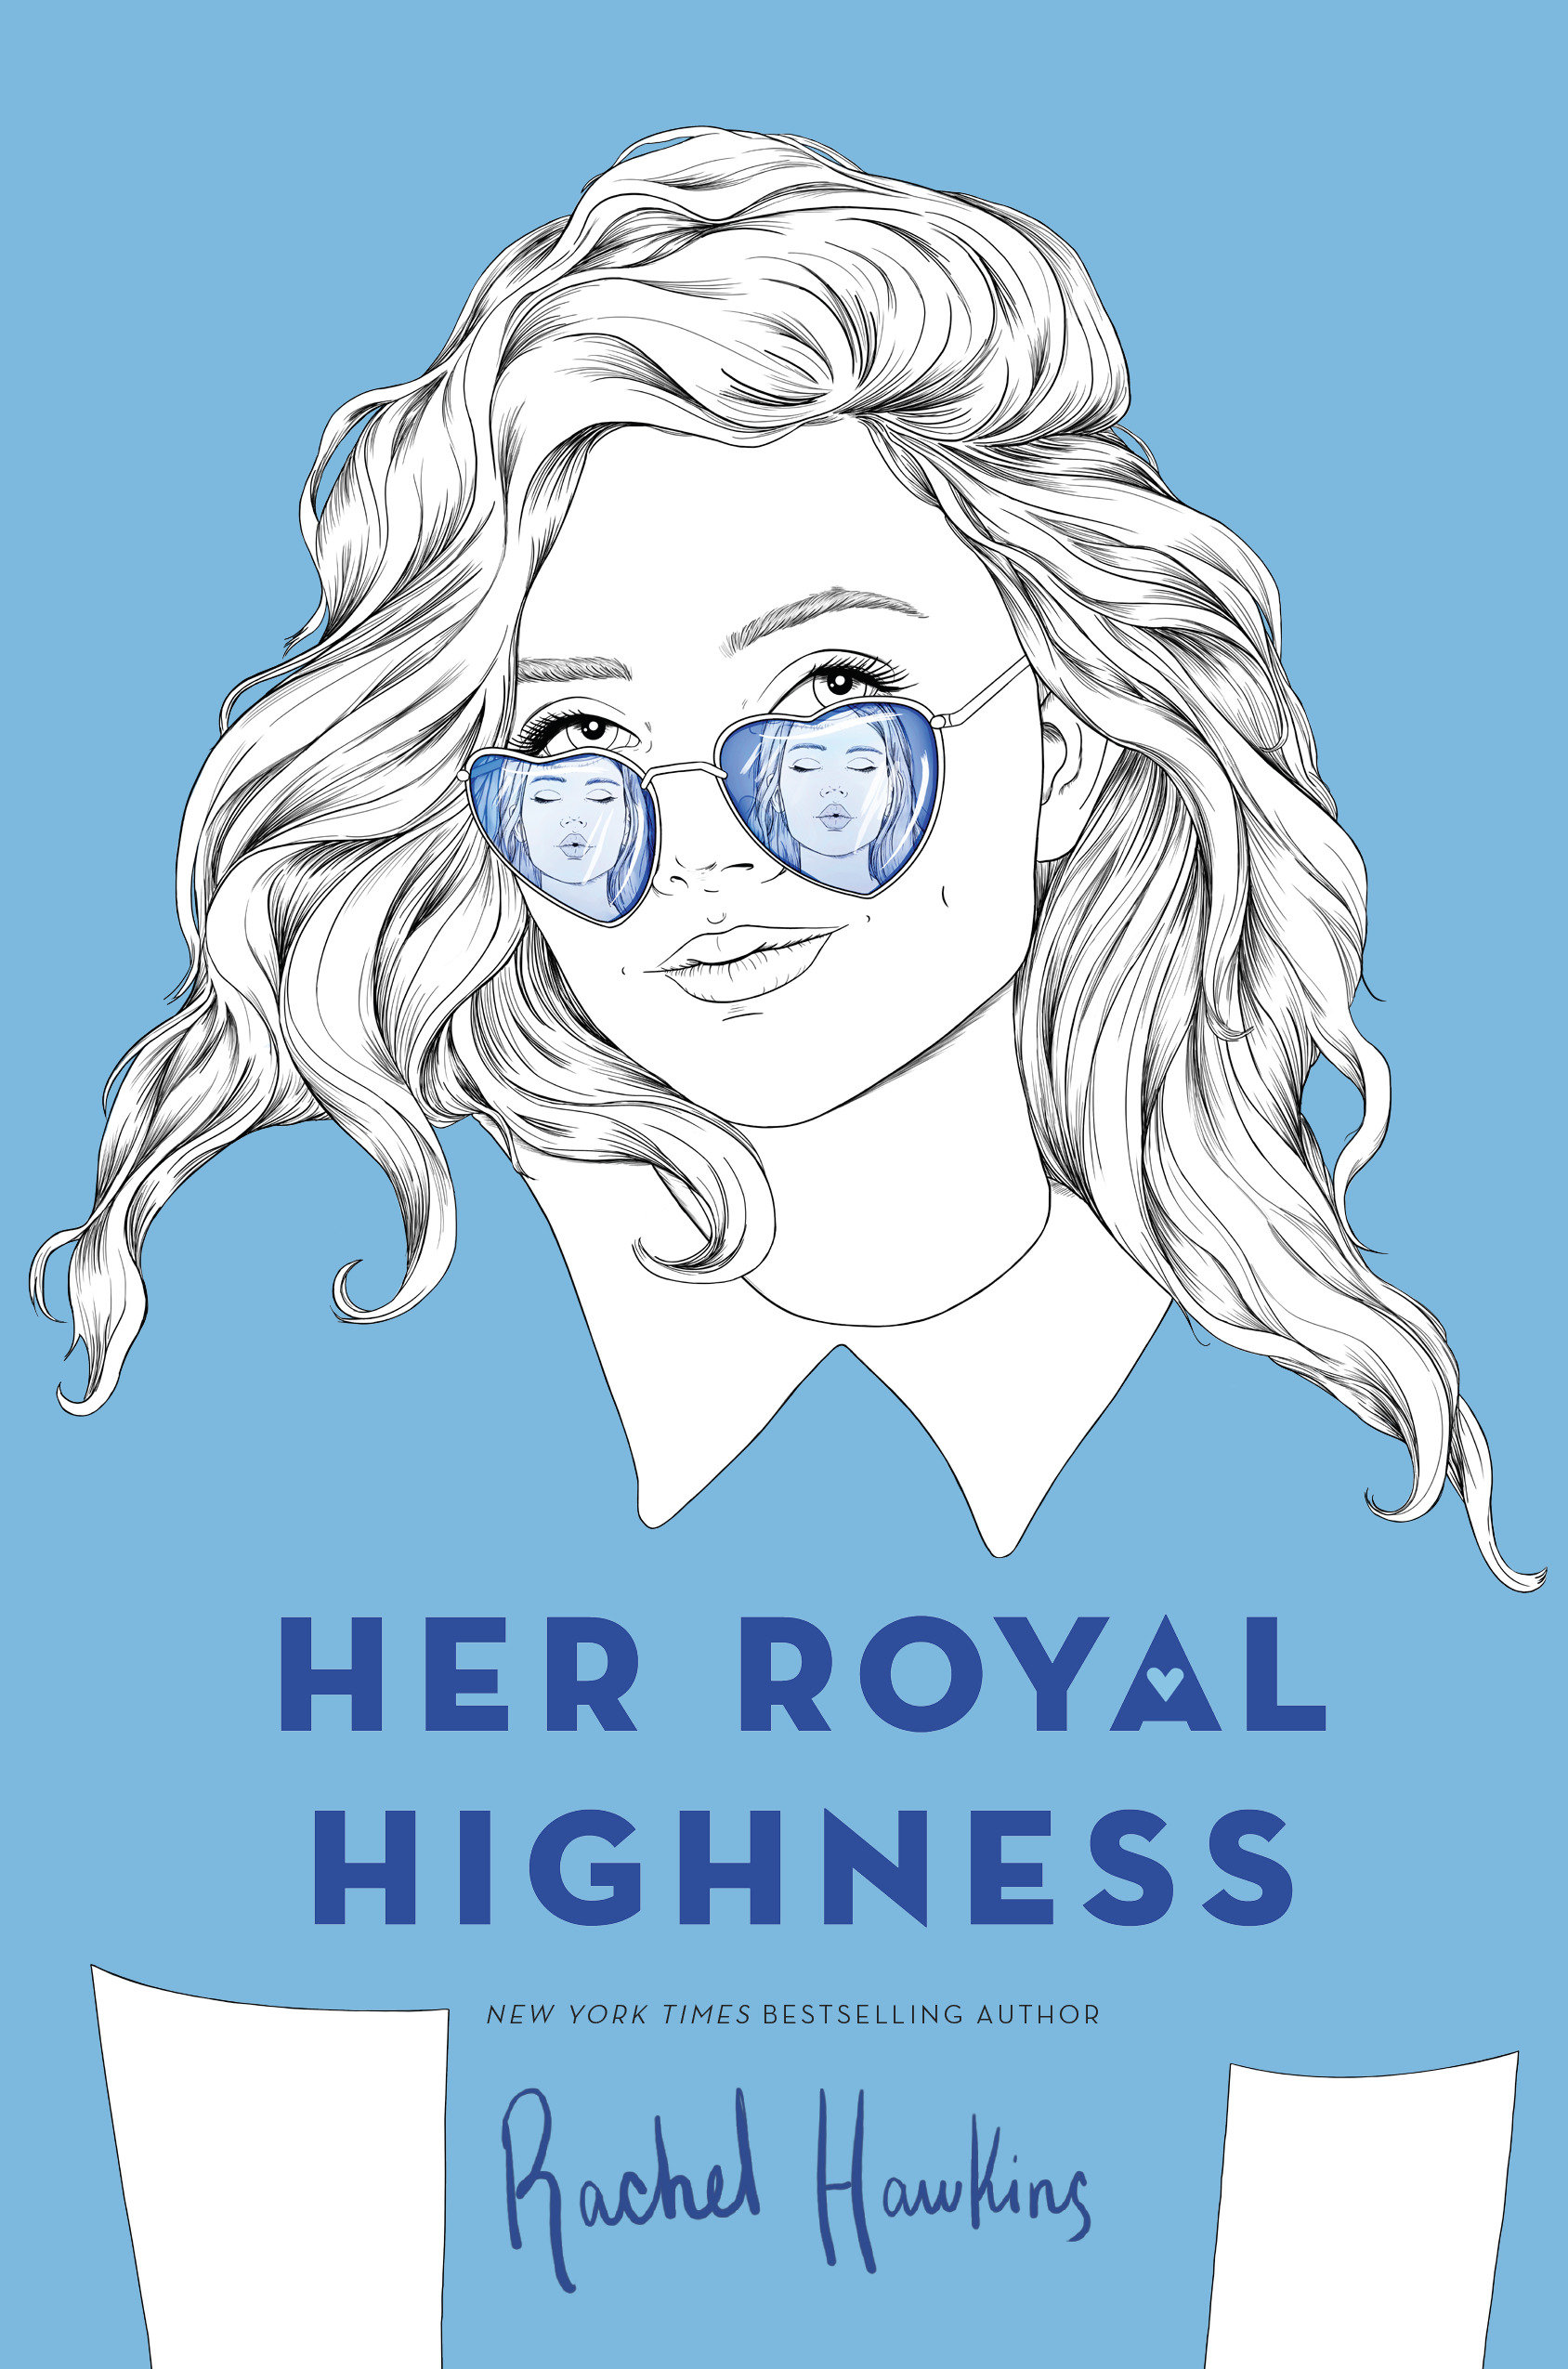 Her Royal Highness [electronic resource]